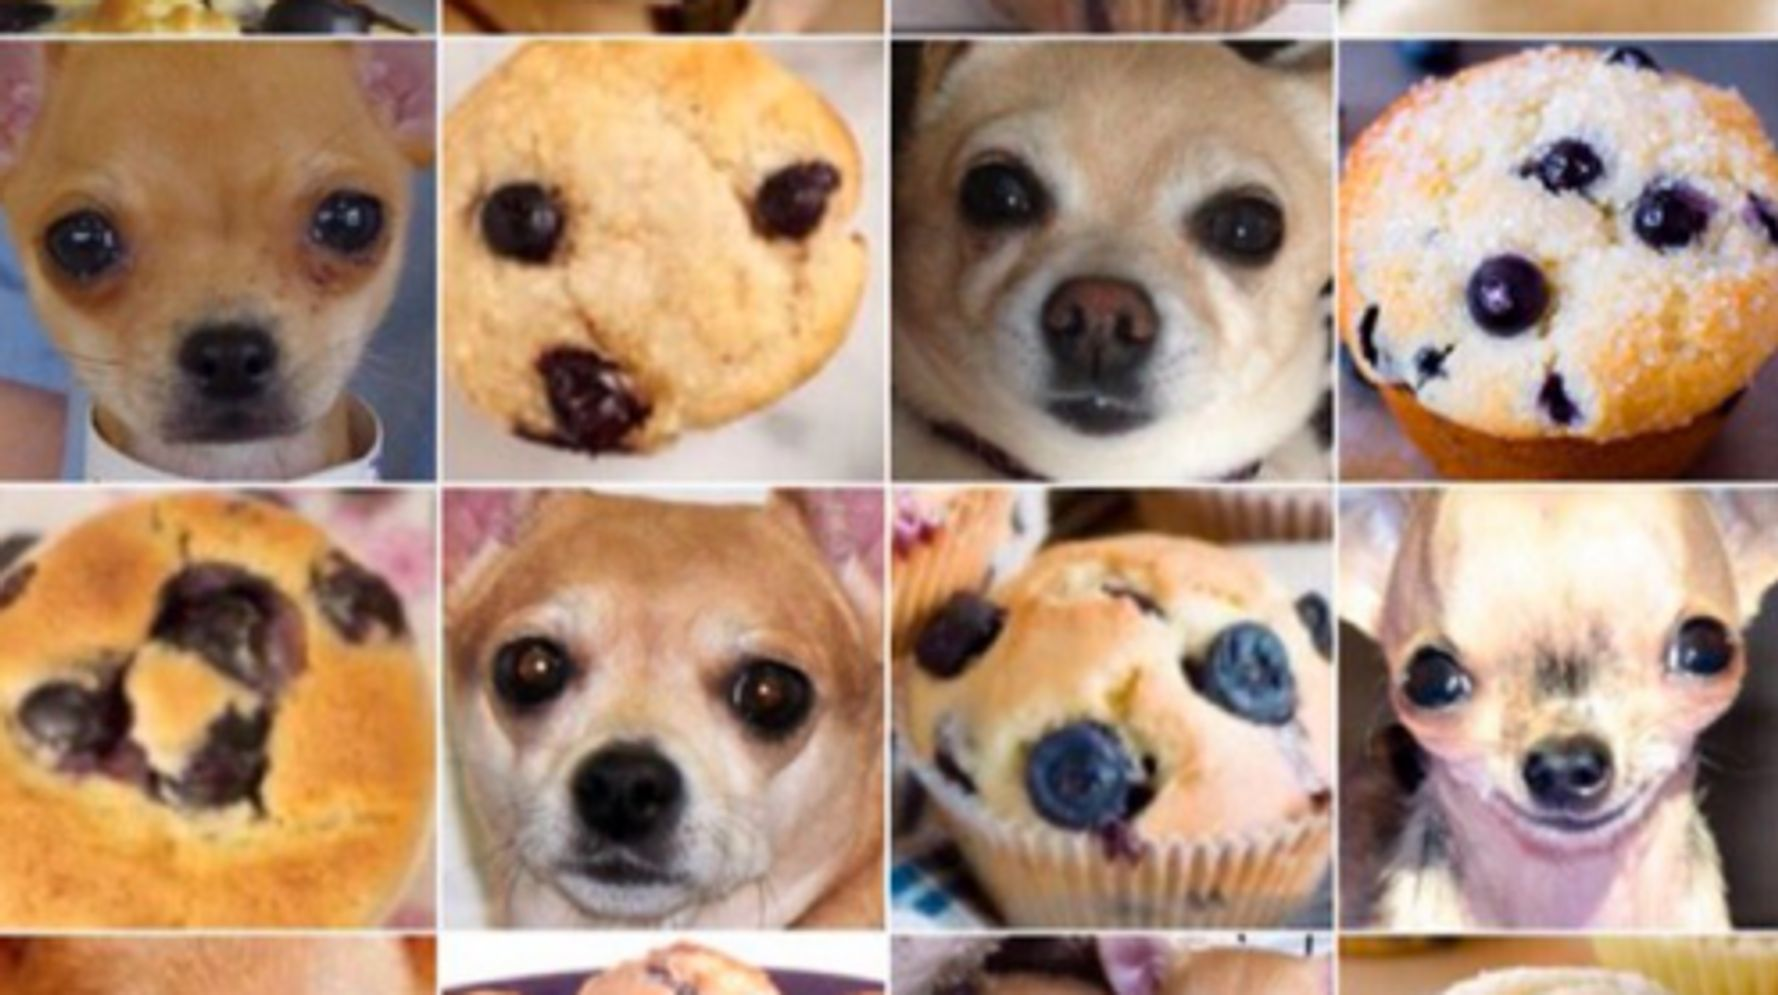 Is This A Muffin Or A Chihuahua? | HuffPost Life